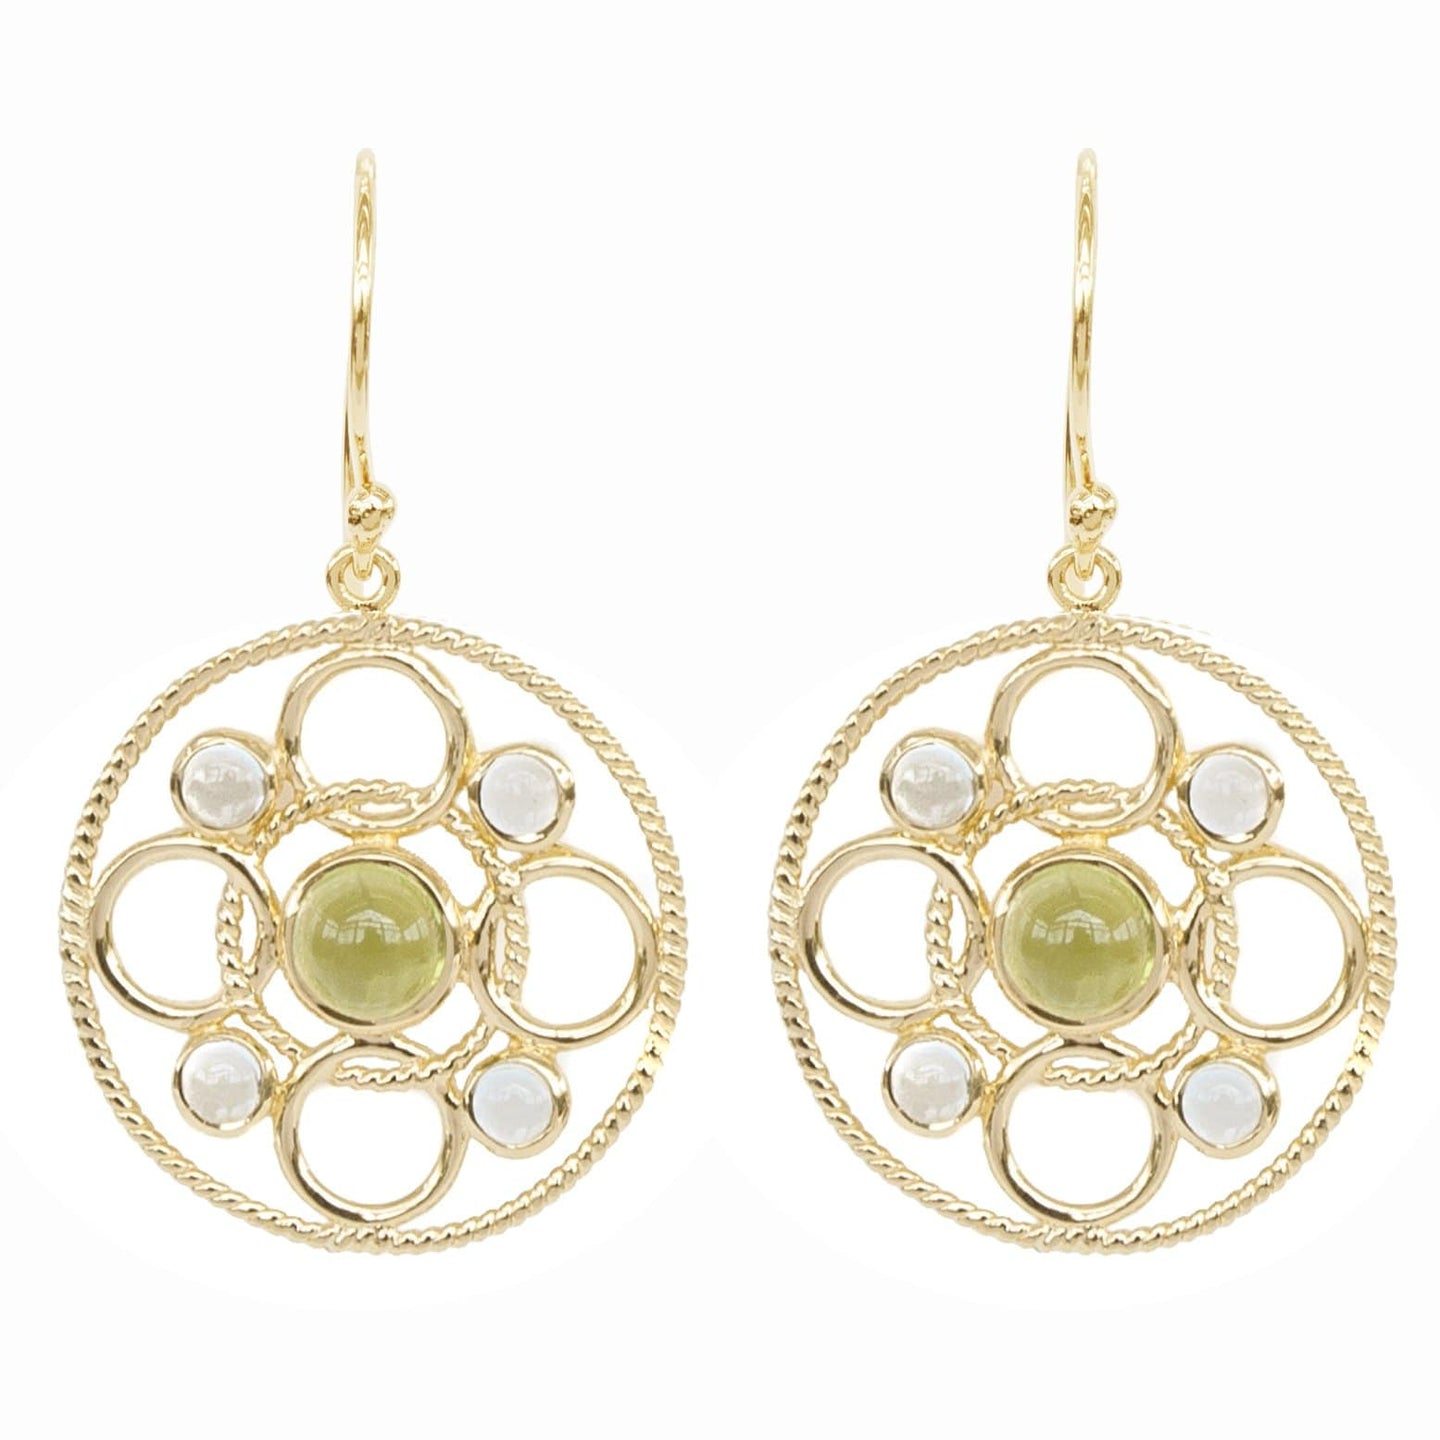 Vermeil Circle Link Earrings with Cabachon Peridot and Sky Blue Topaz 'new'